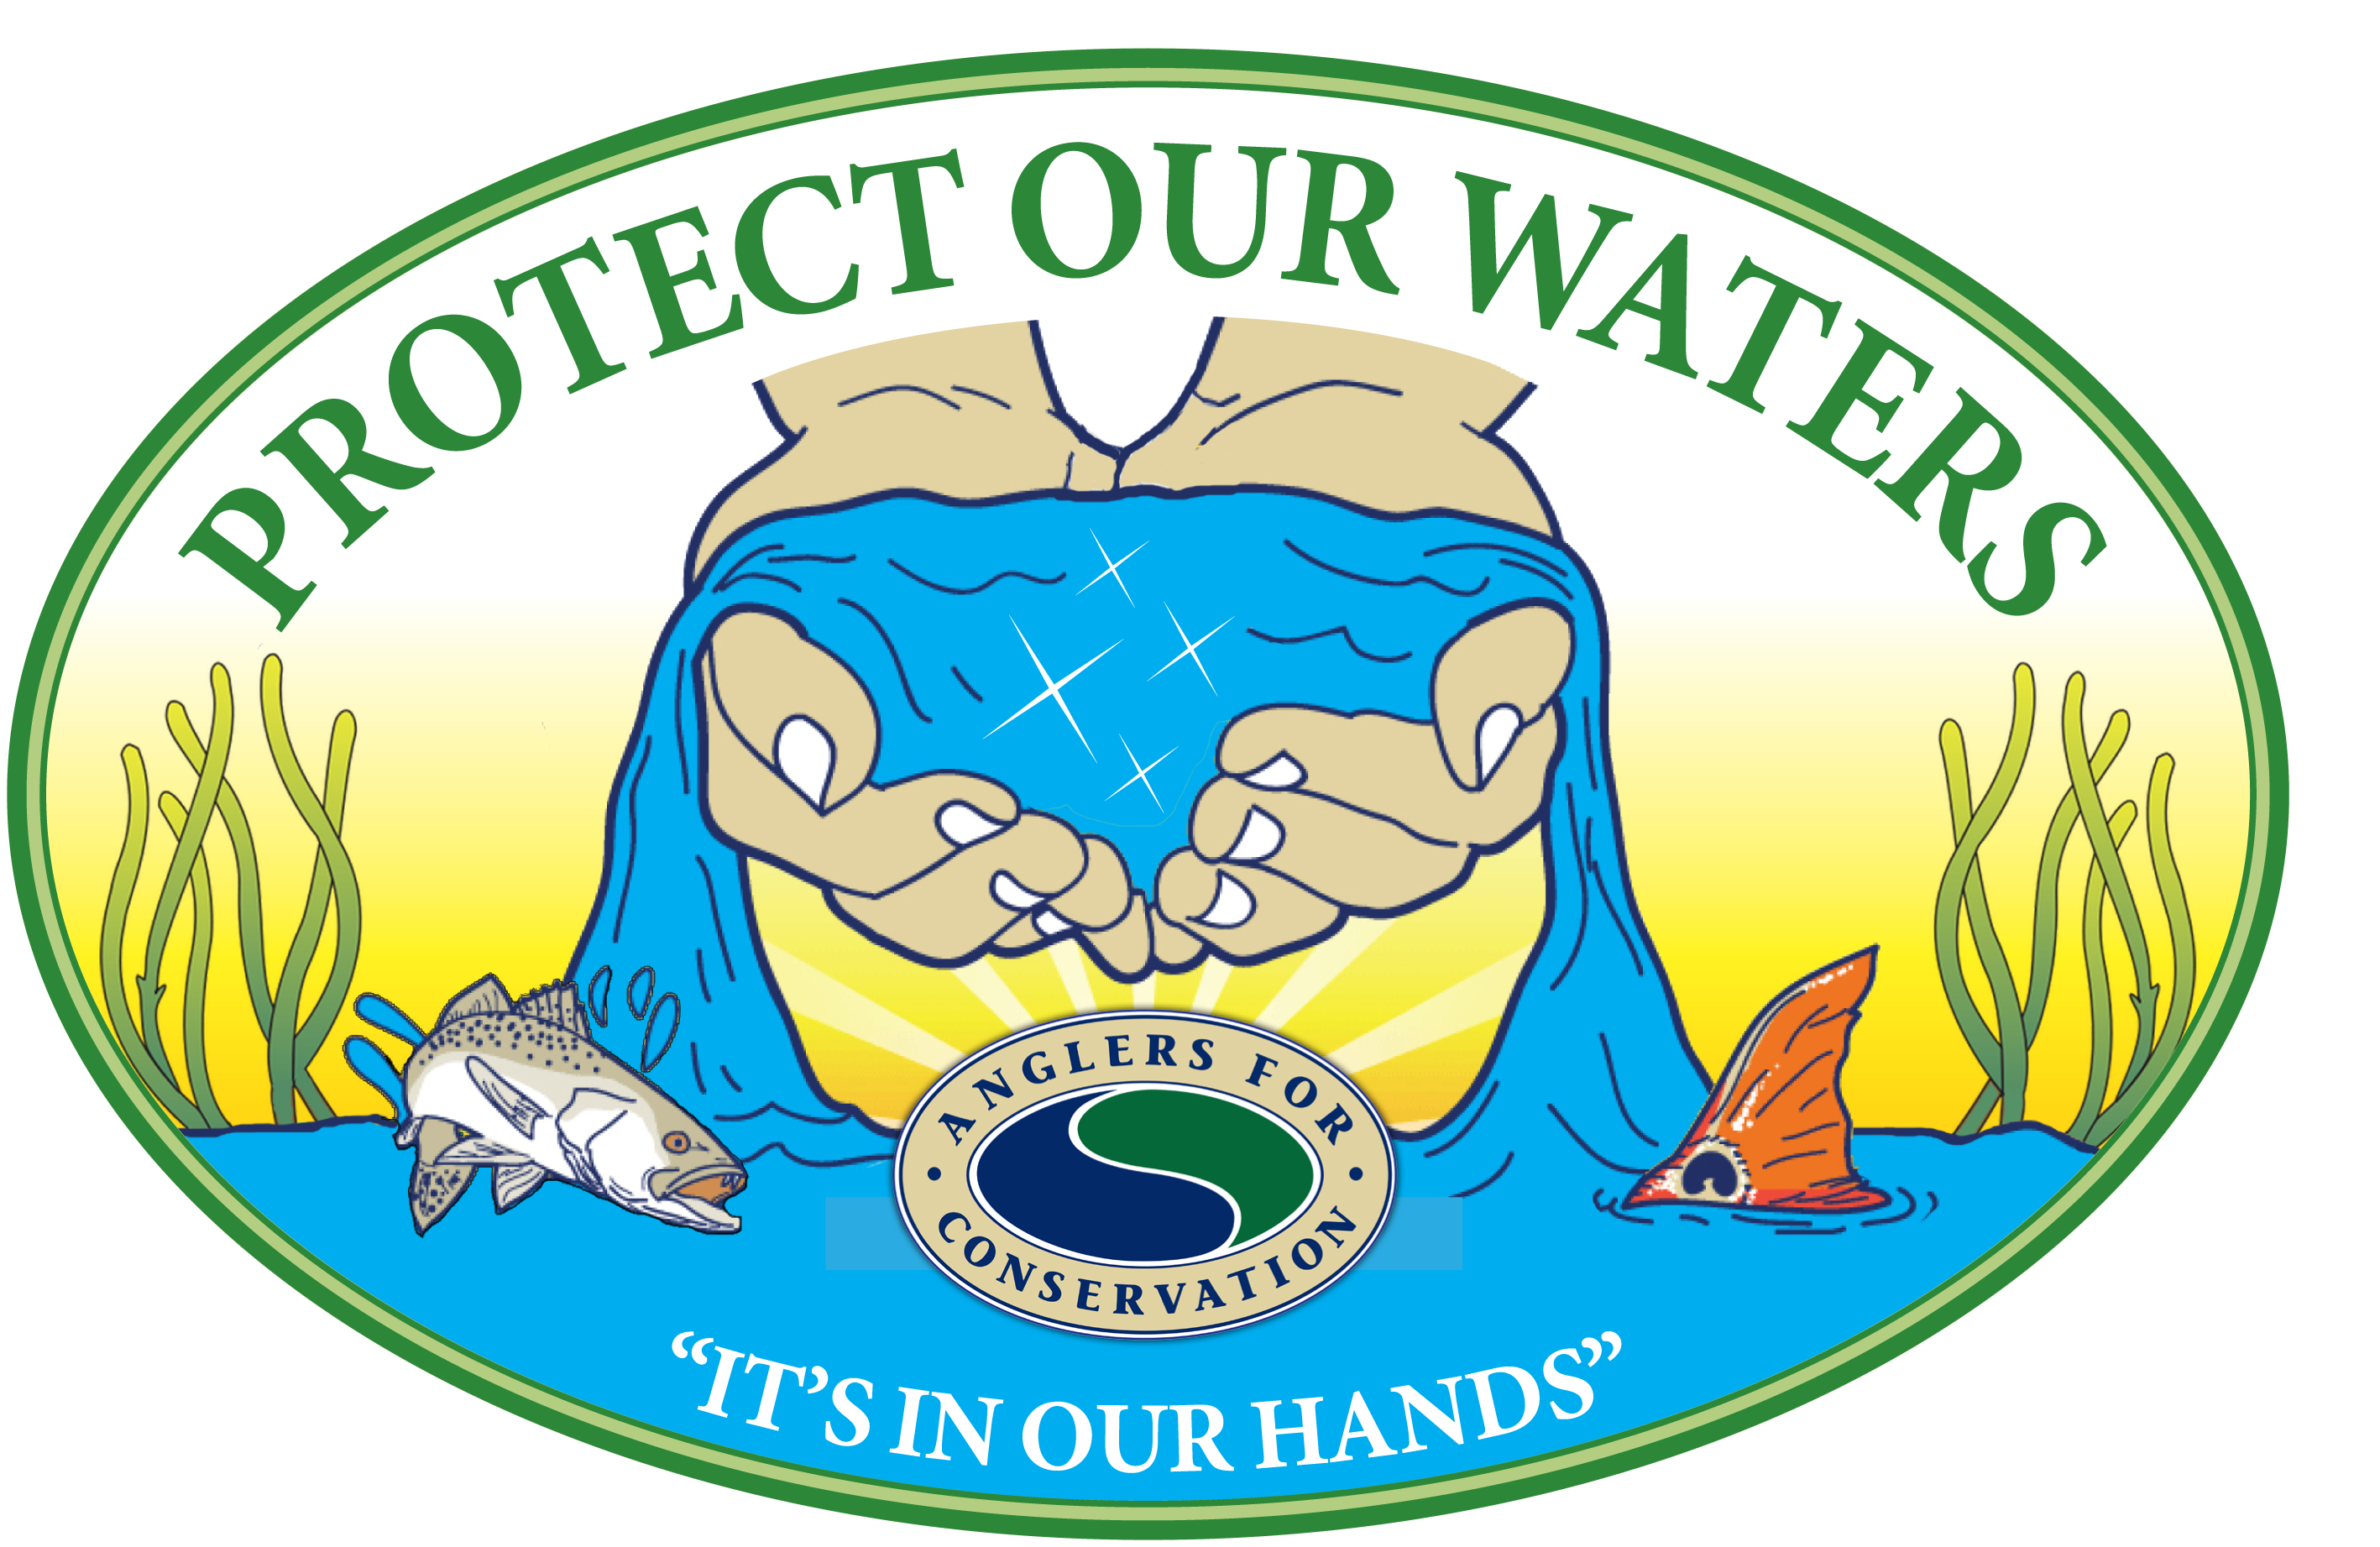 Protect our waters anglers. Fundraiser clipart upcoming event